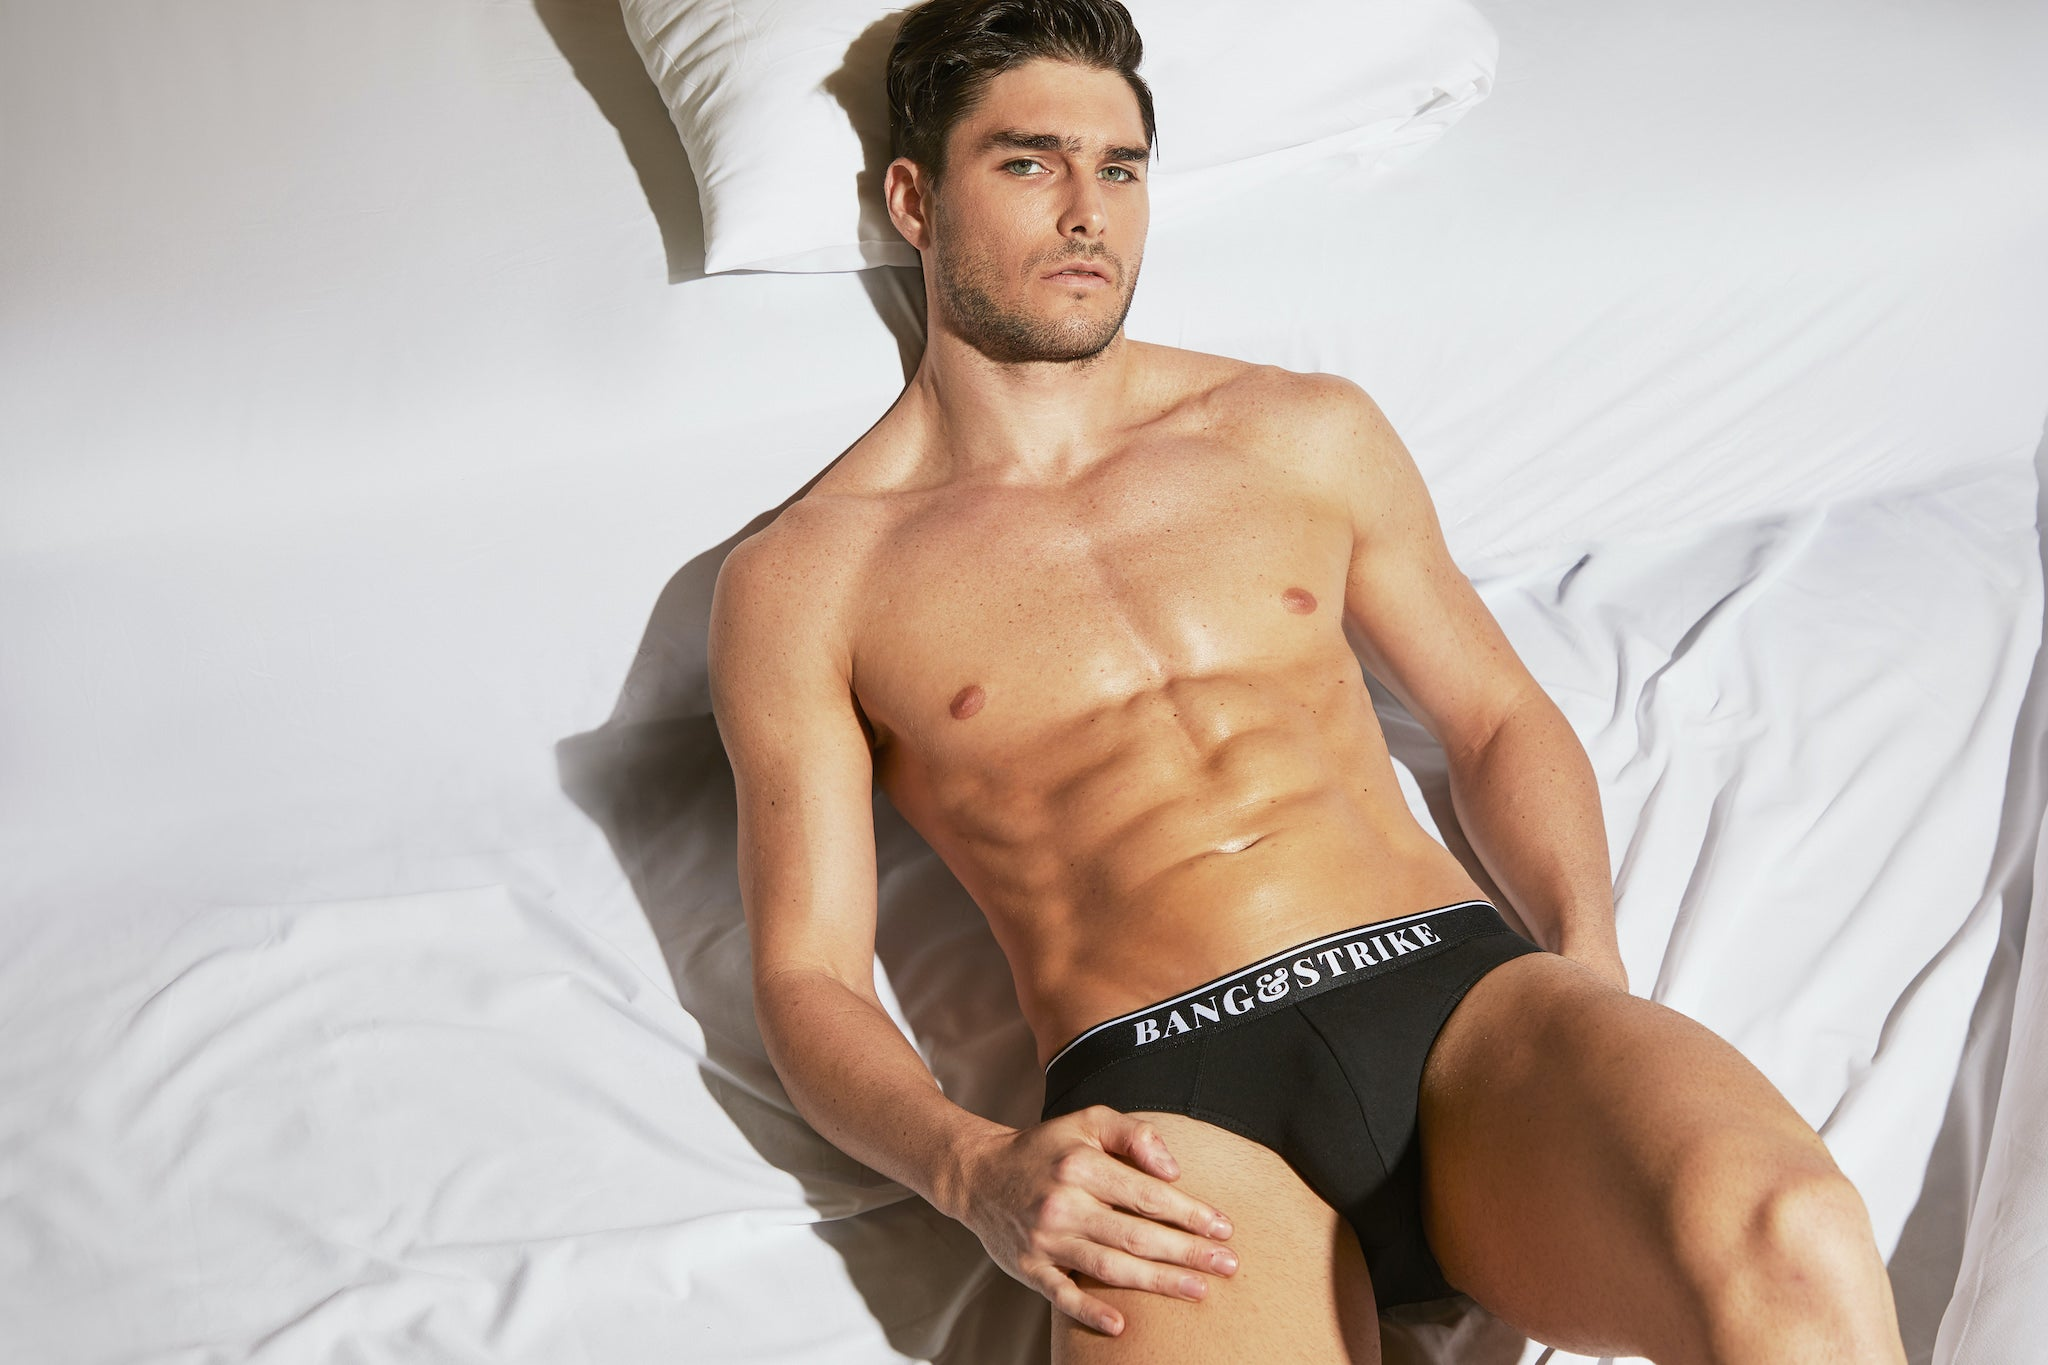 BANG&STRIKE Core Black Cotton Stretch Brief